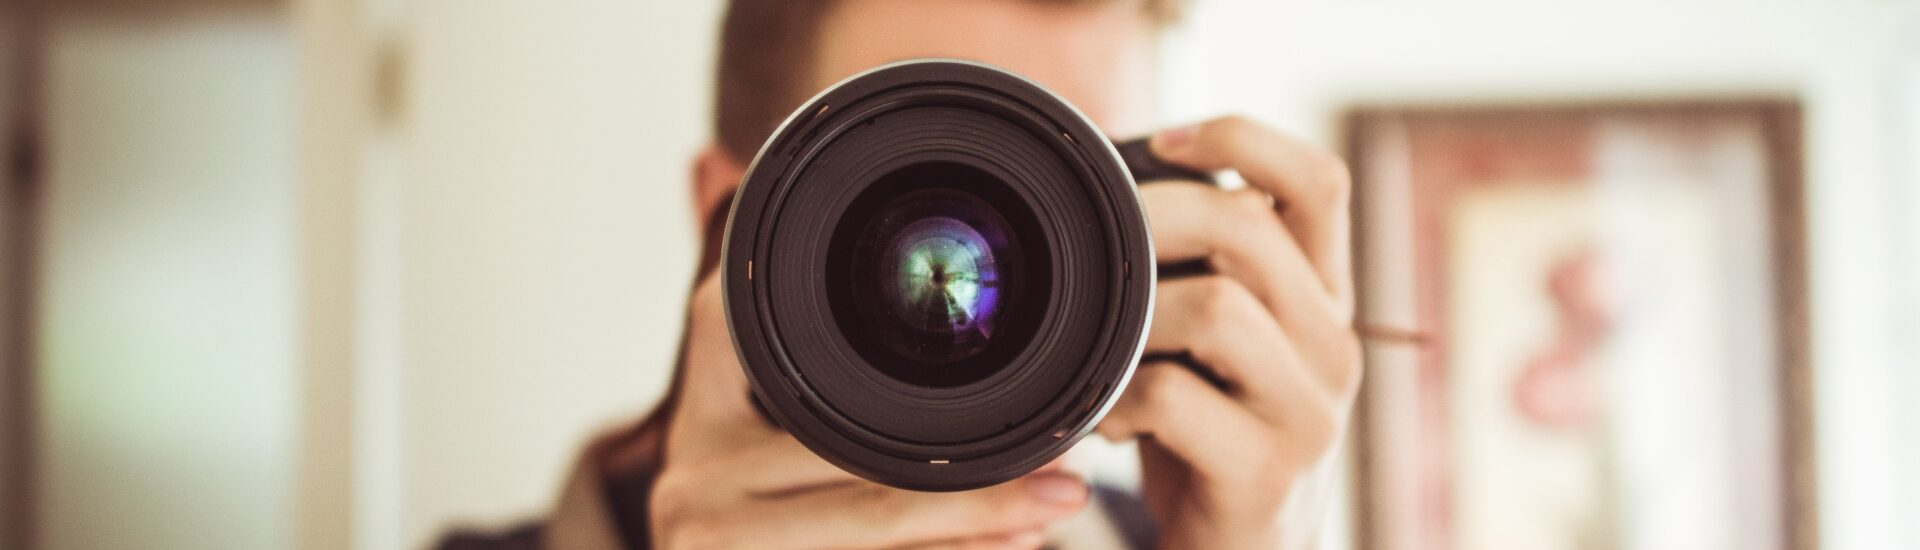 Photography laws in Germany